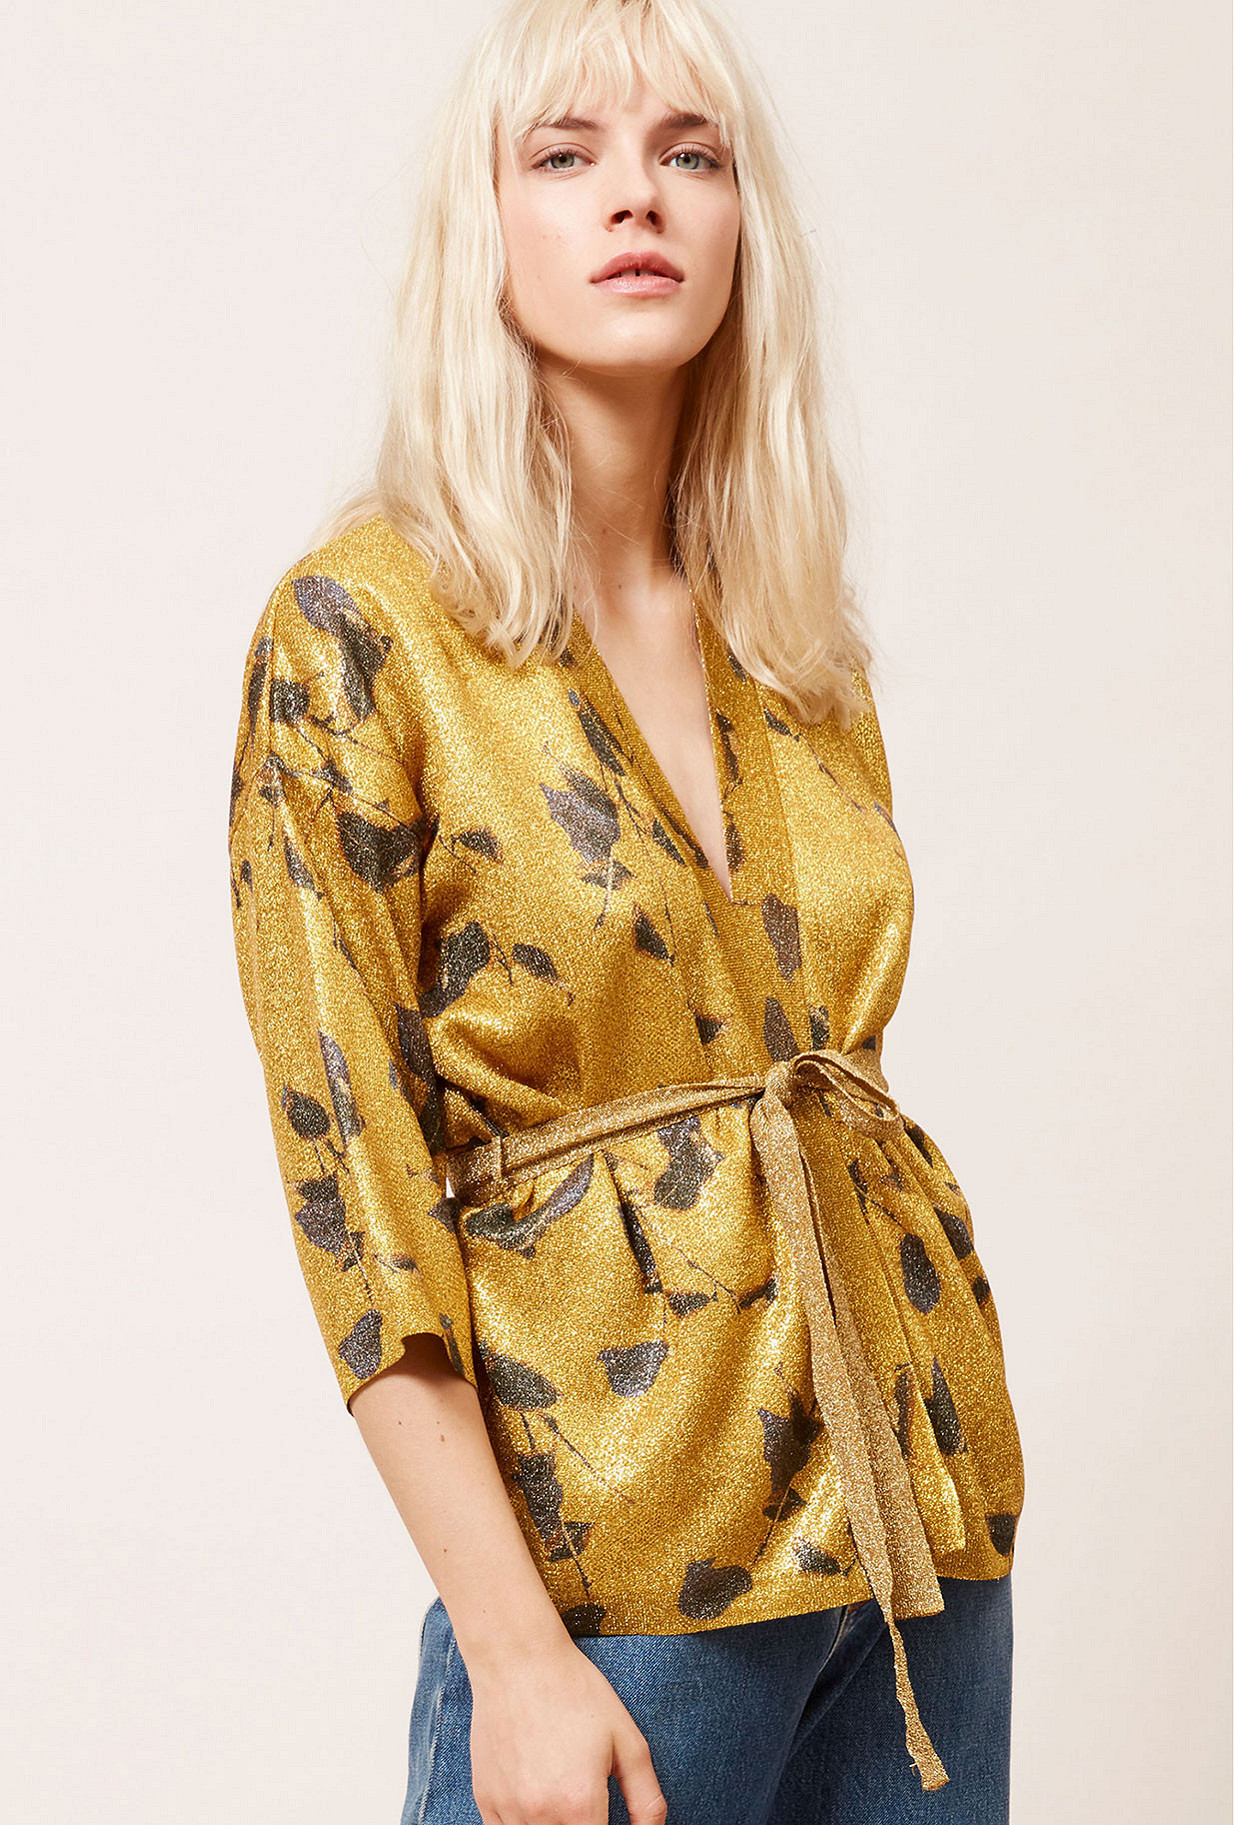 Paris clothes store Kimono  Grimmy french designer fashion Paris